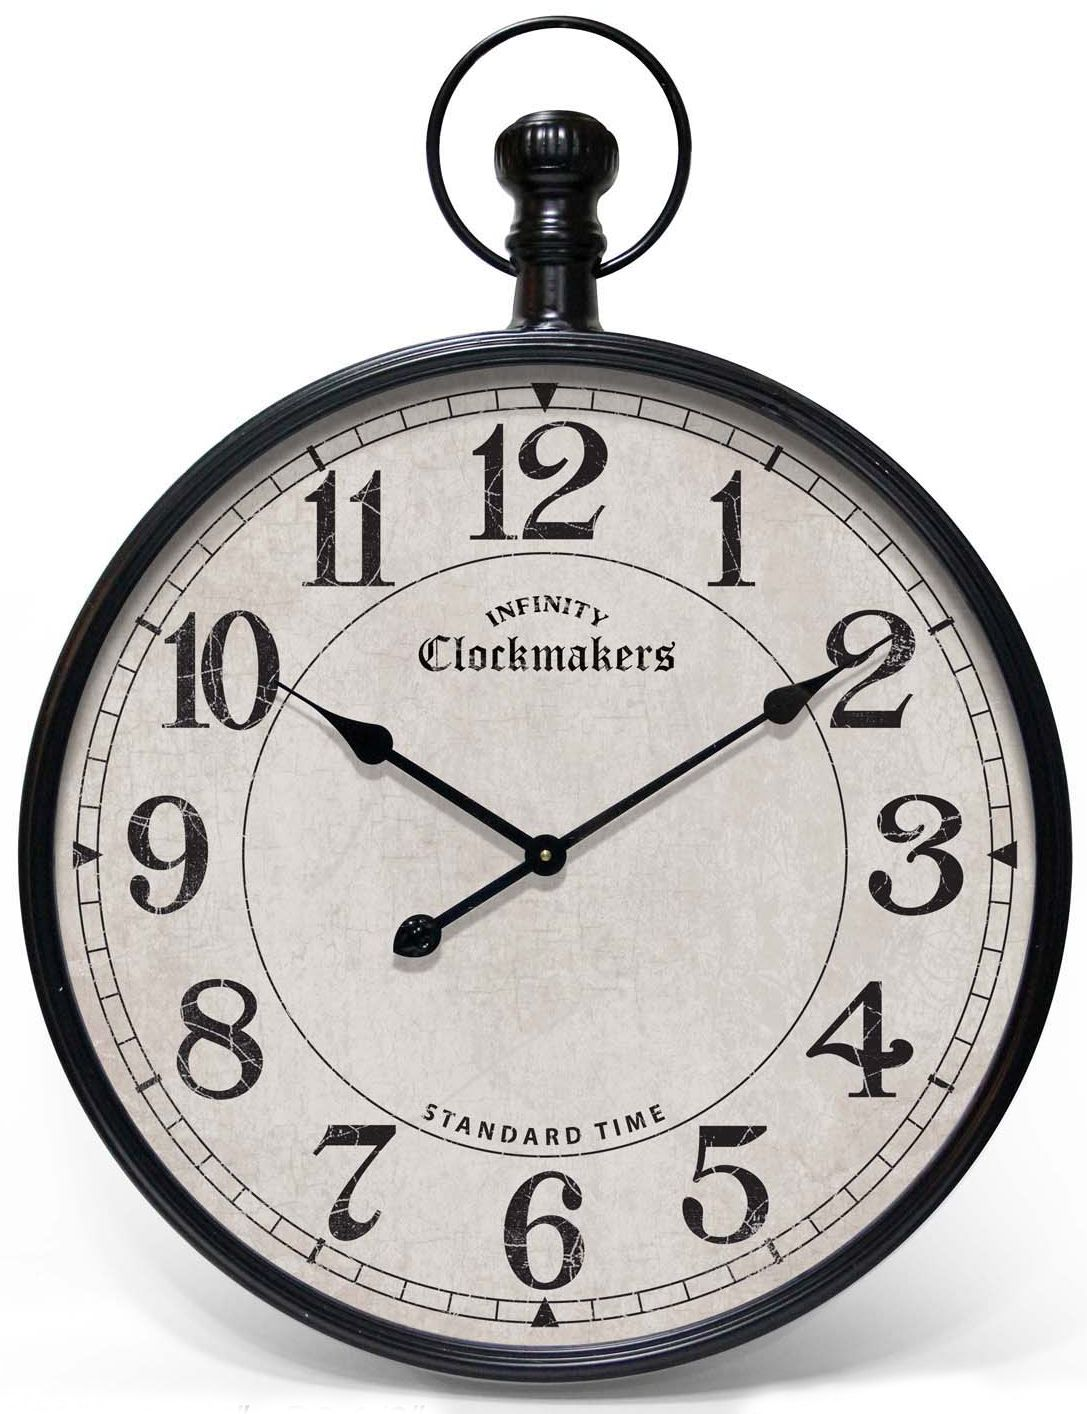 Grand central clock by infinity instruments large wall clock the grand central pocket watch wall clock is a classic pocket watch design the thick case is made of metal painted in amipublicfo Gallery